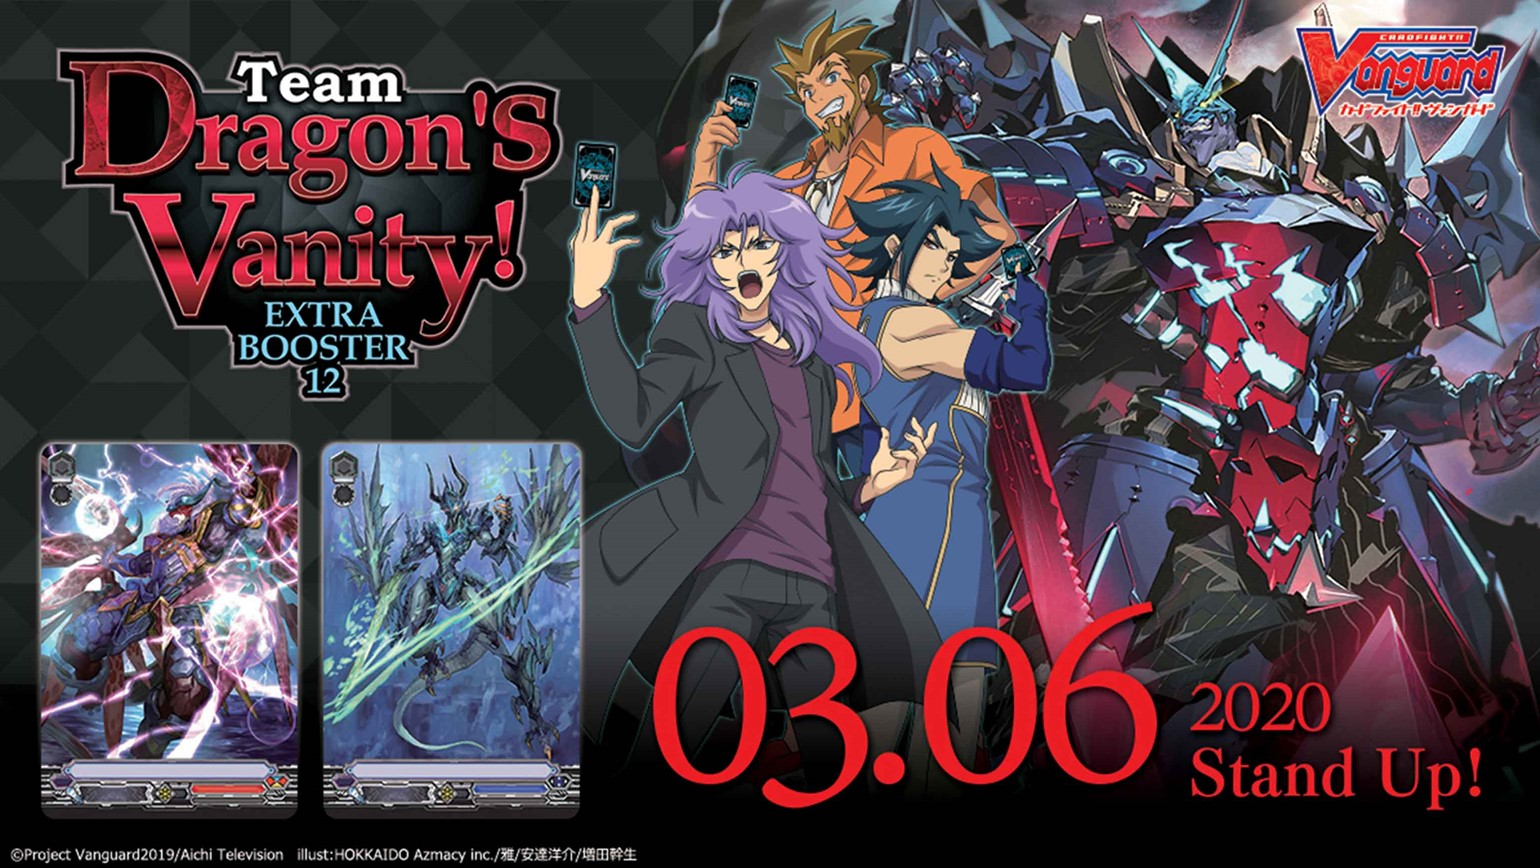 English Edition Cardfight!! Vanguard Extra Booster 12: Team Dragon's Vanity! Coming March 6th